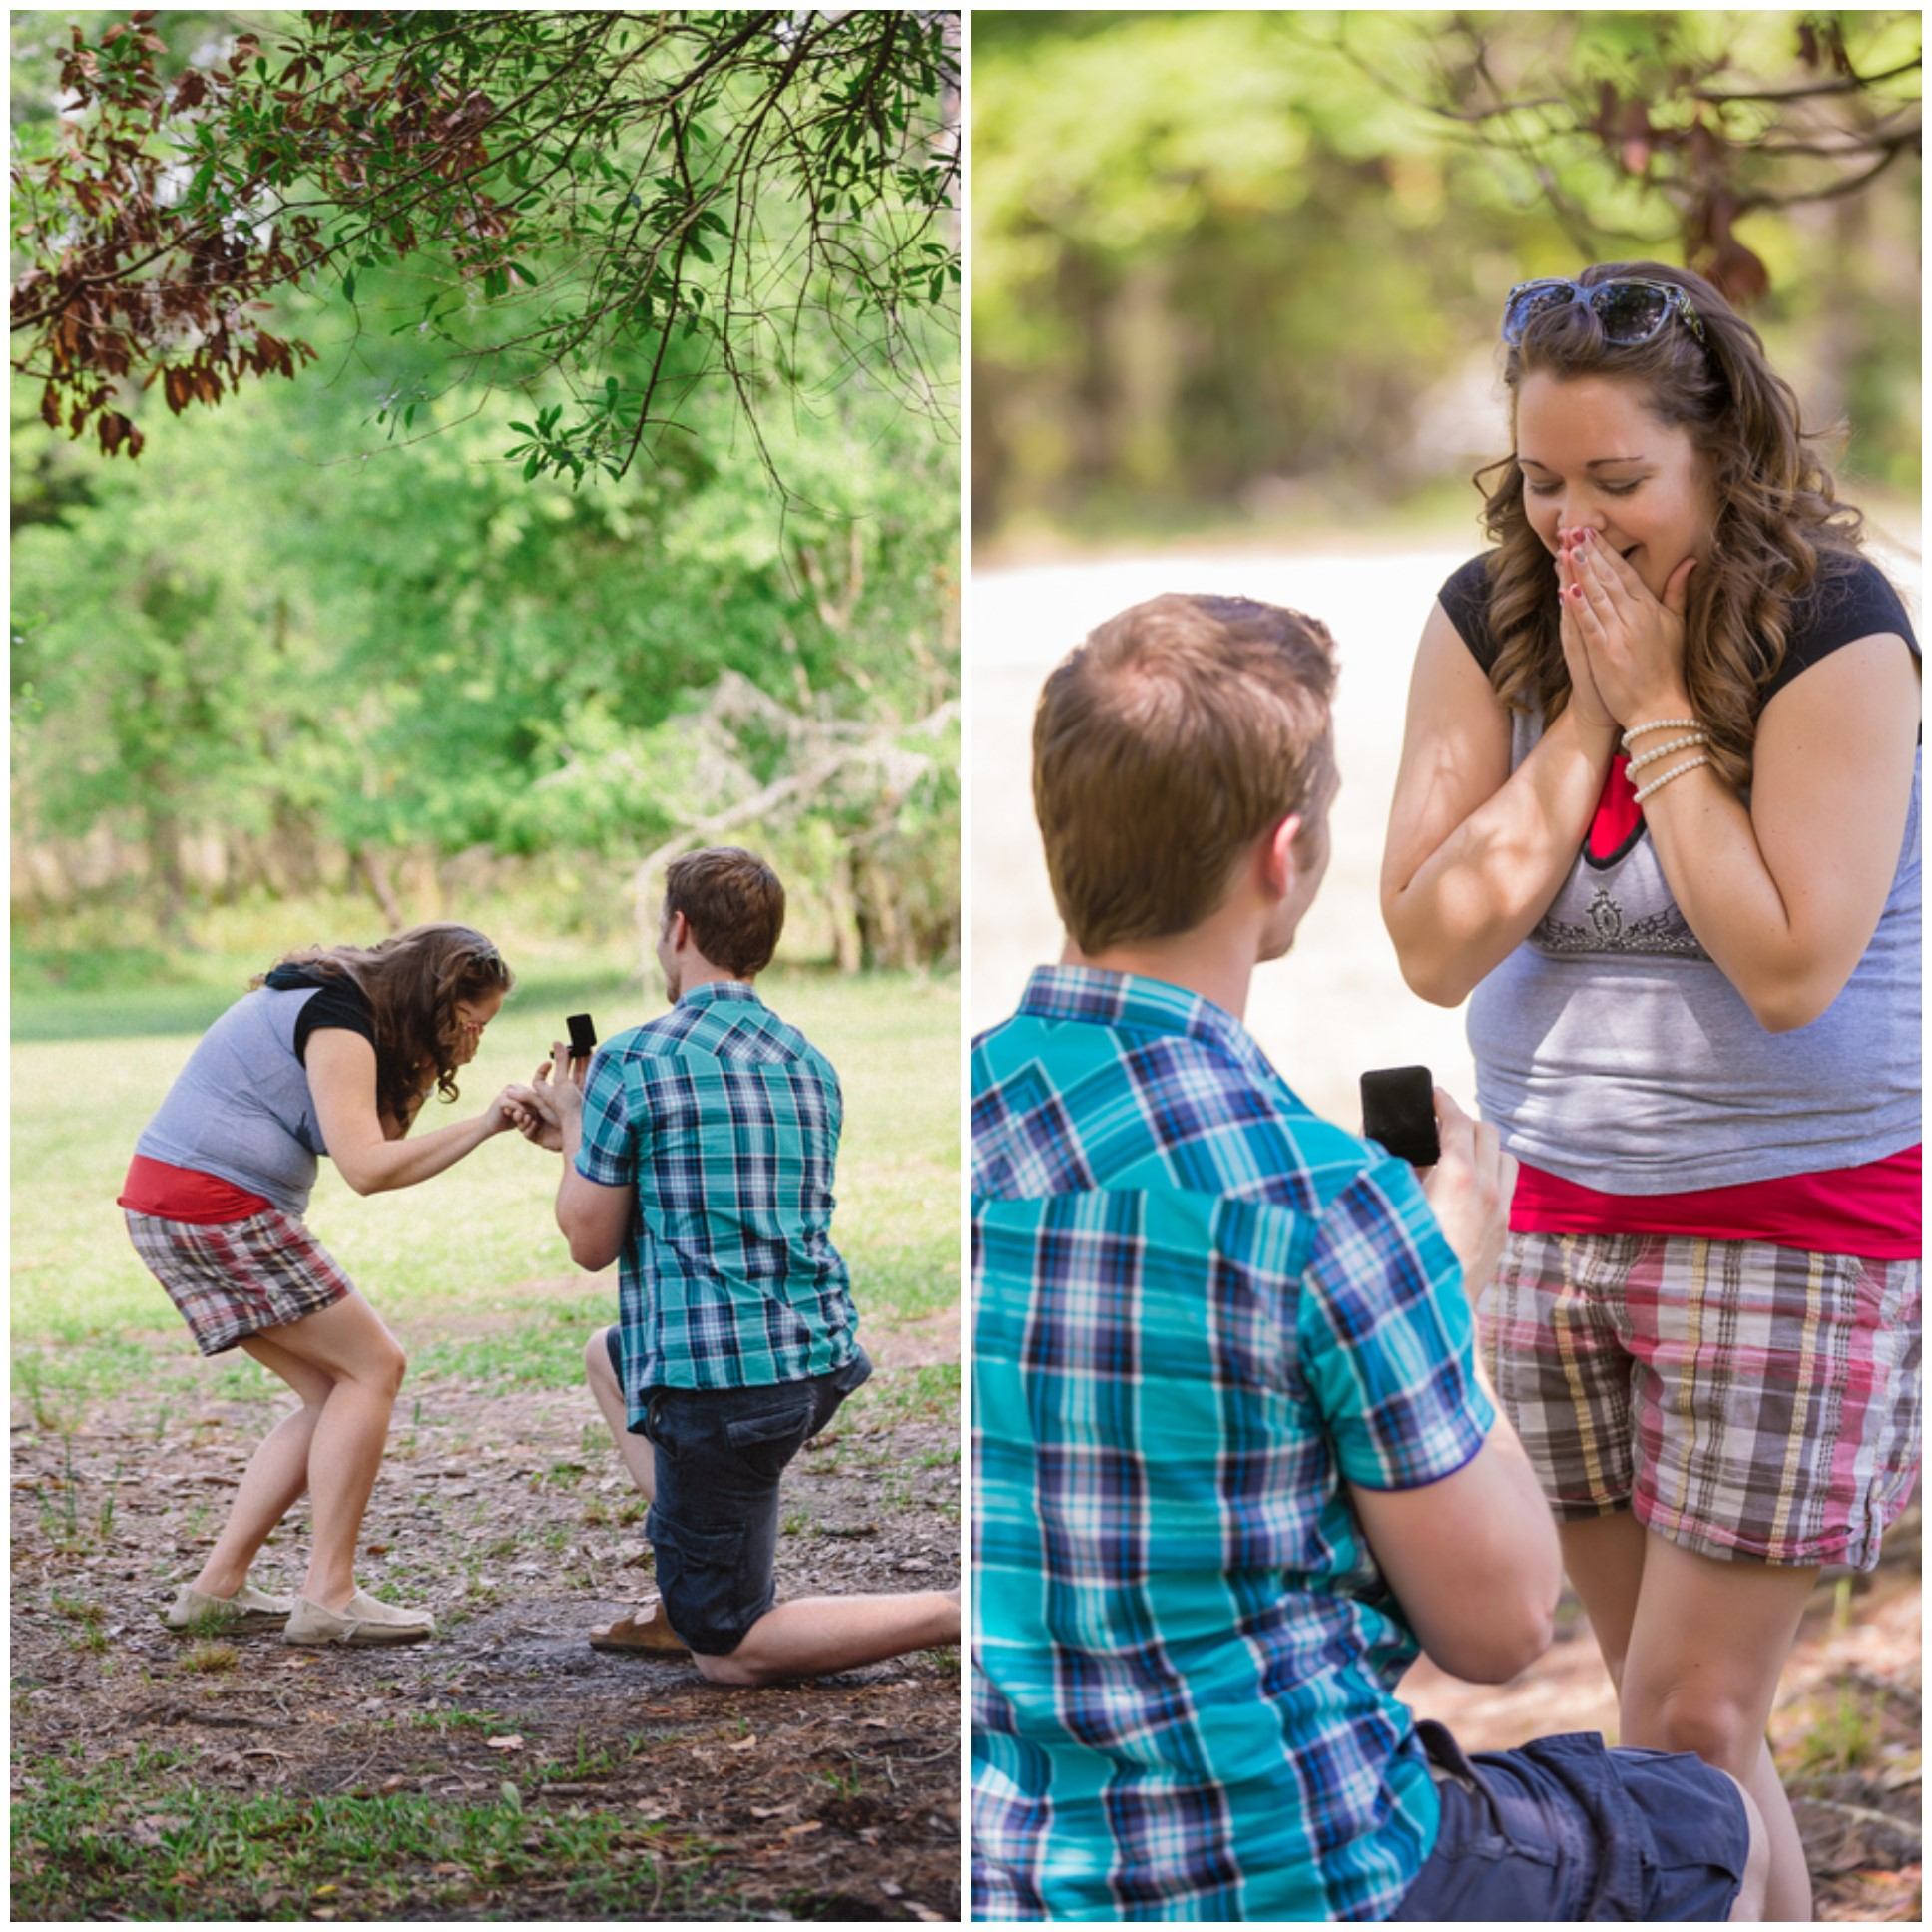 Marriage Proposal in the Park (5)